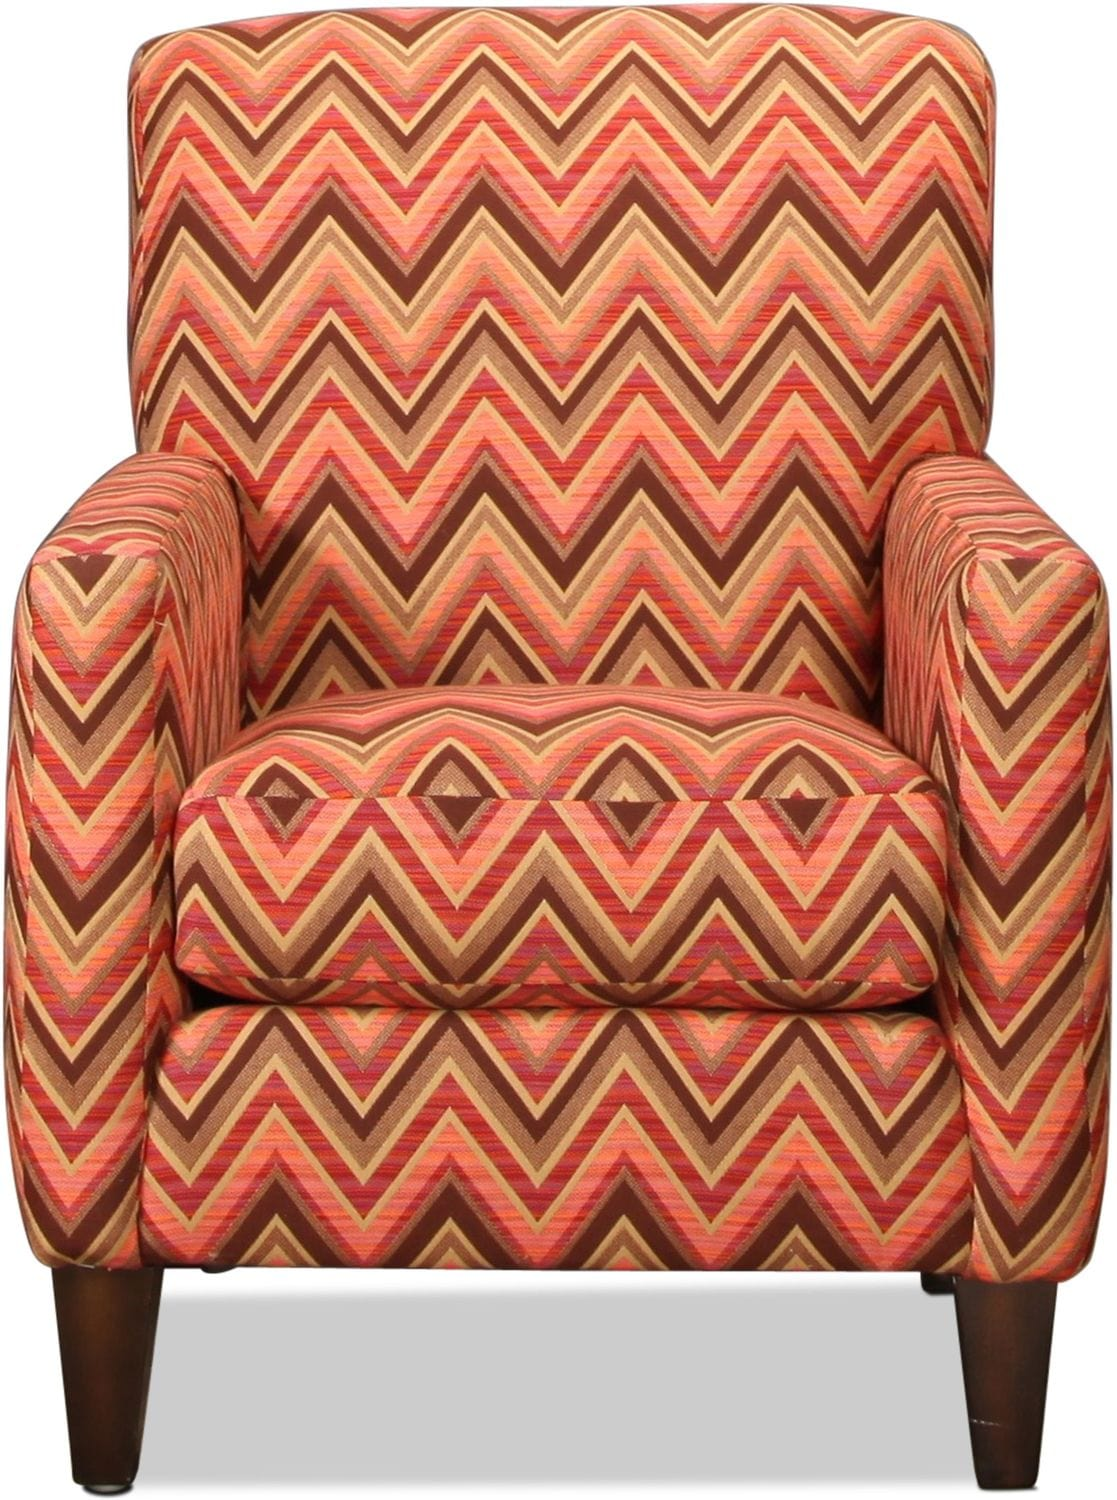 Sunbrella Accent Chair - Chevron